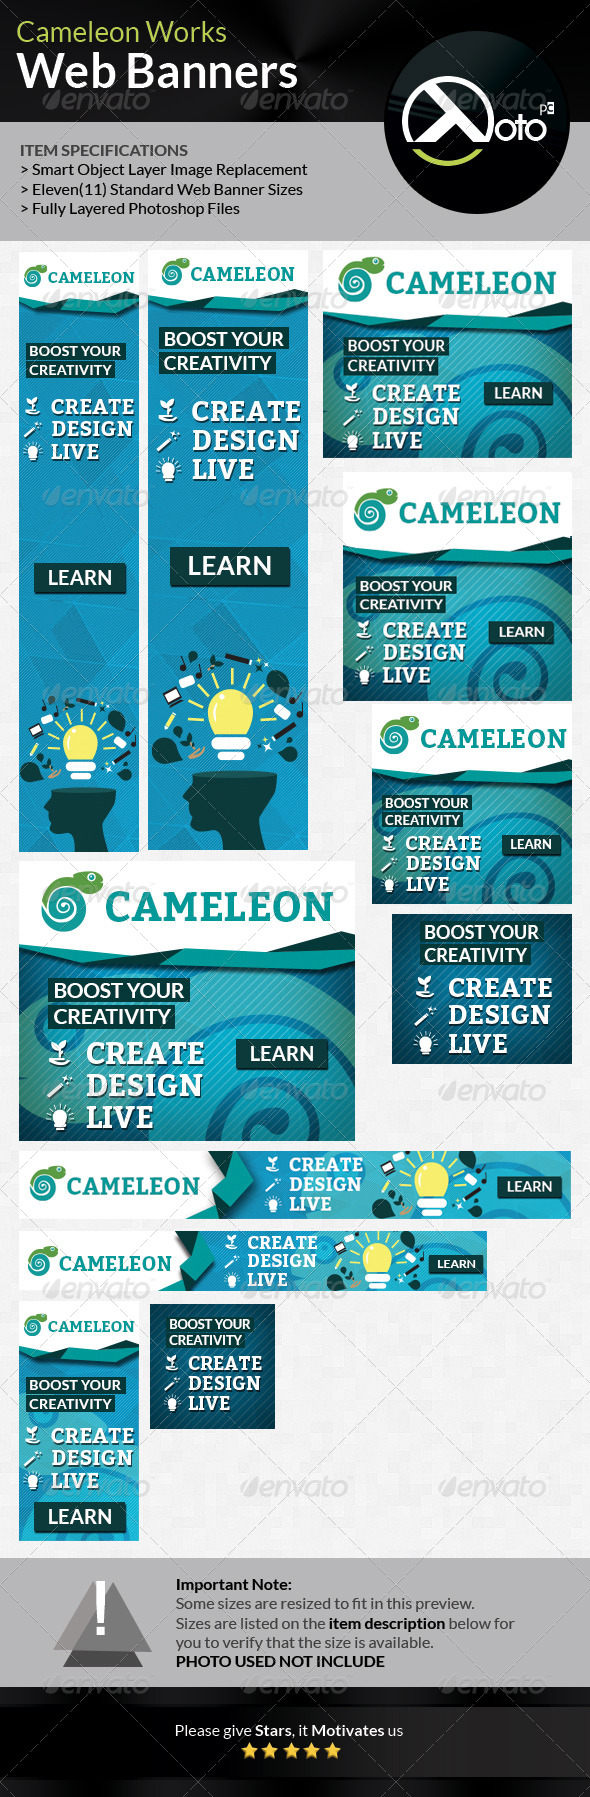 Cameleon Works Web Banners   Web banners, Banner template and Web ...